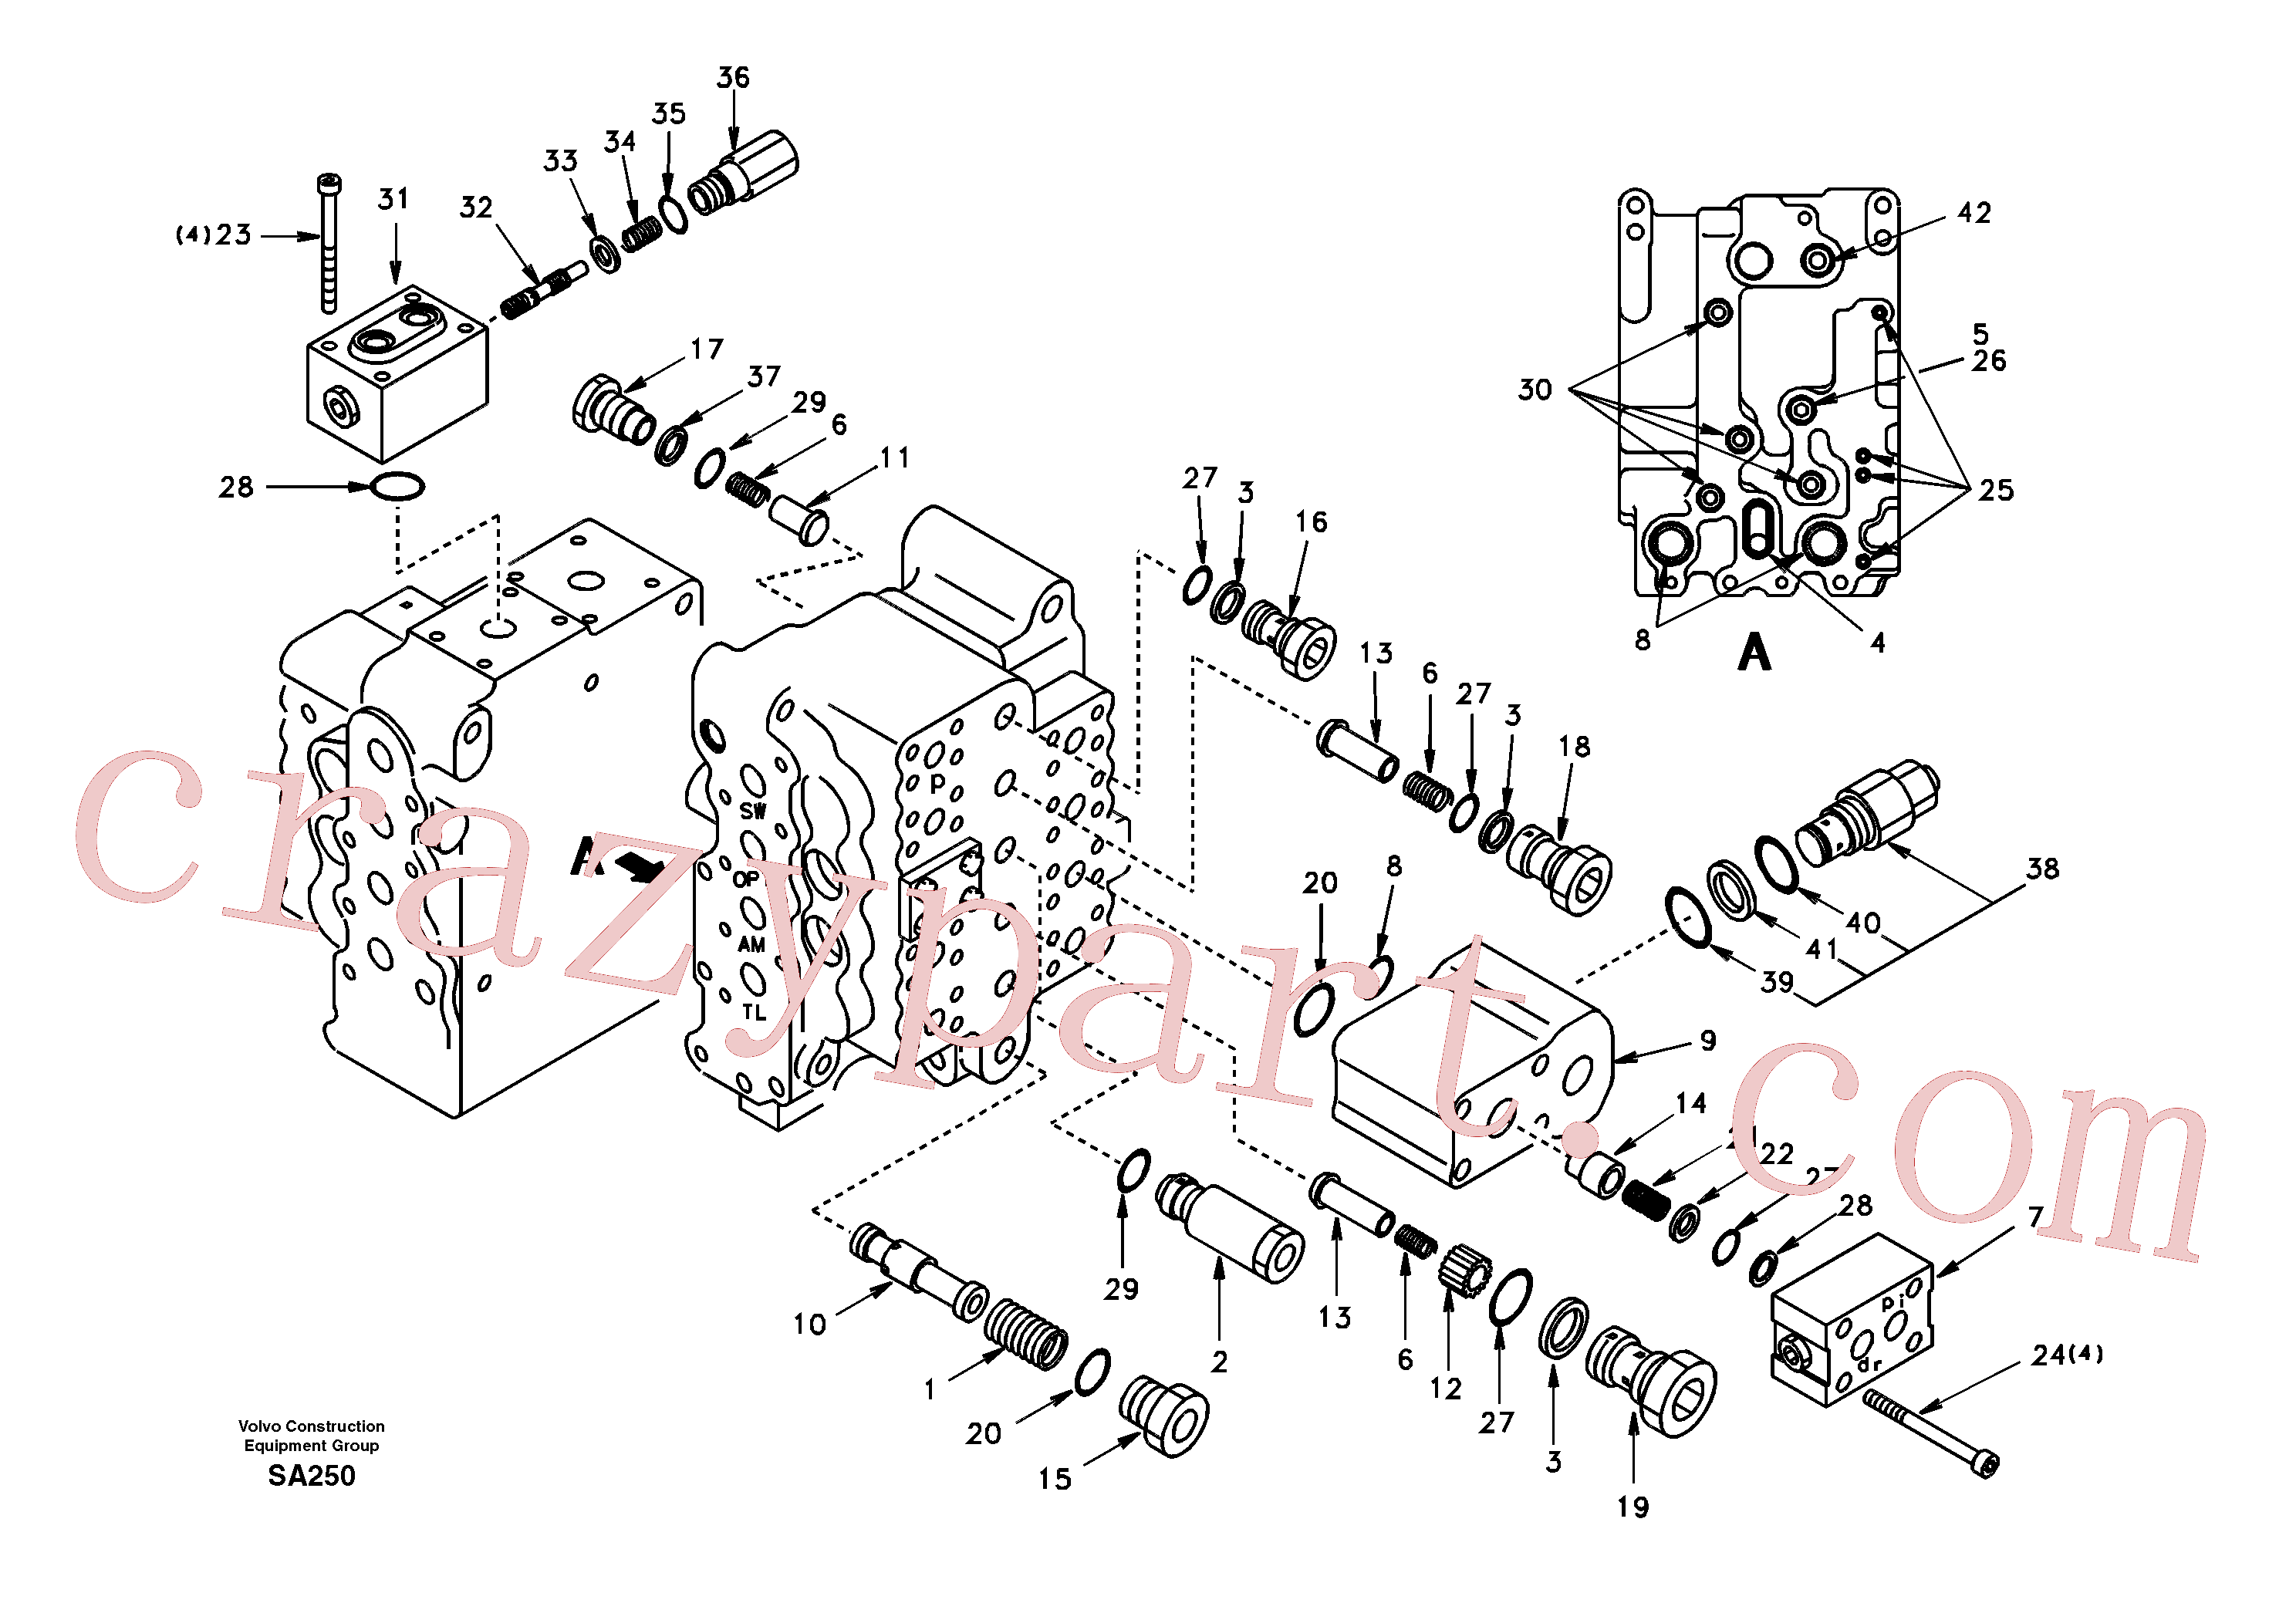 SA8230-11890 for Volvo Main control valve, relief valve and dipper arm holding(SA250 assembly)